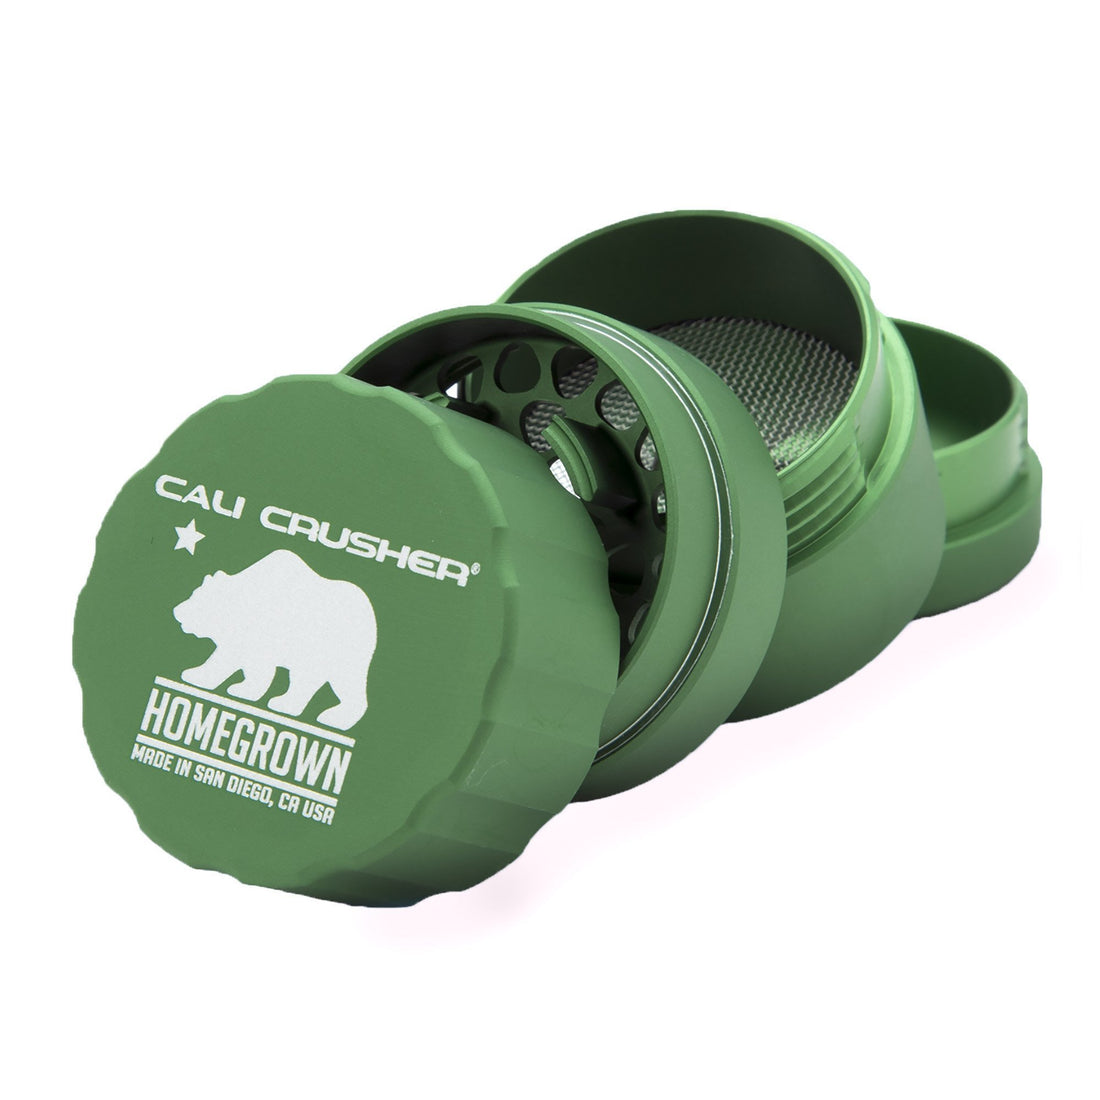 Cali Crusher Pocket Homegrown 4-Way Quicklock Grinder - 420 Science - The most trusted online smoke shop.